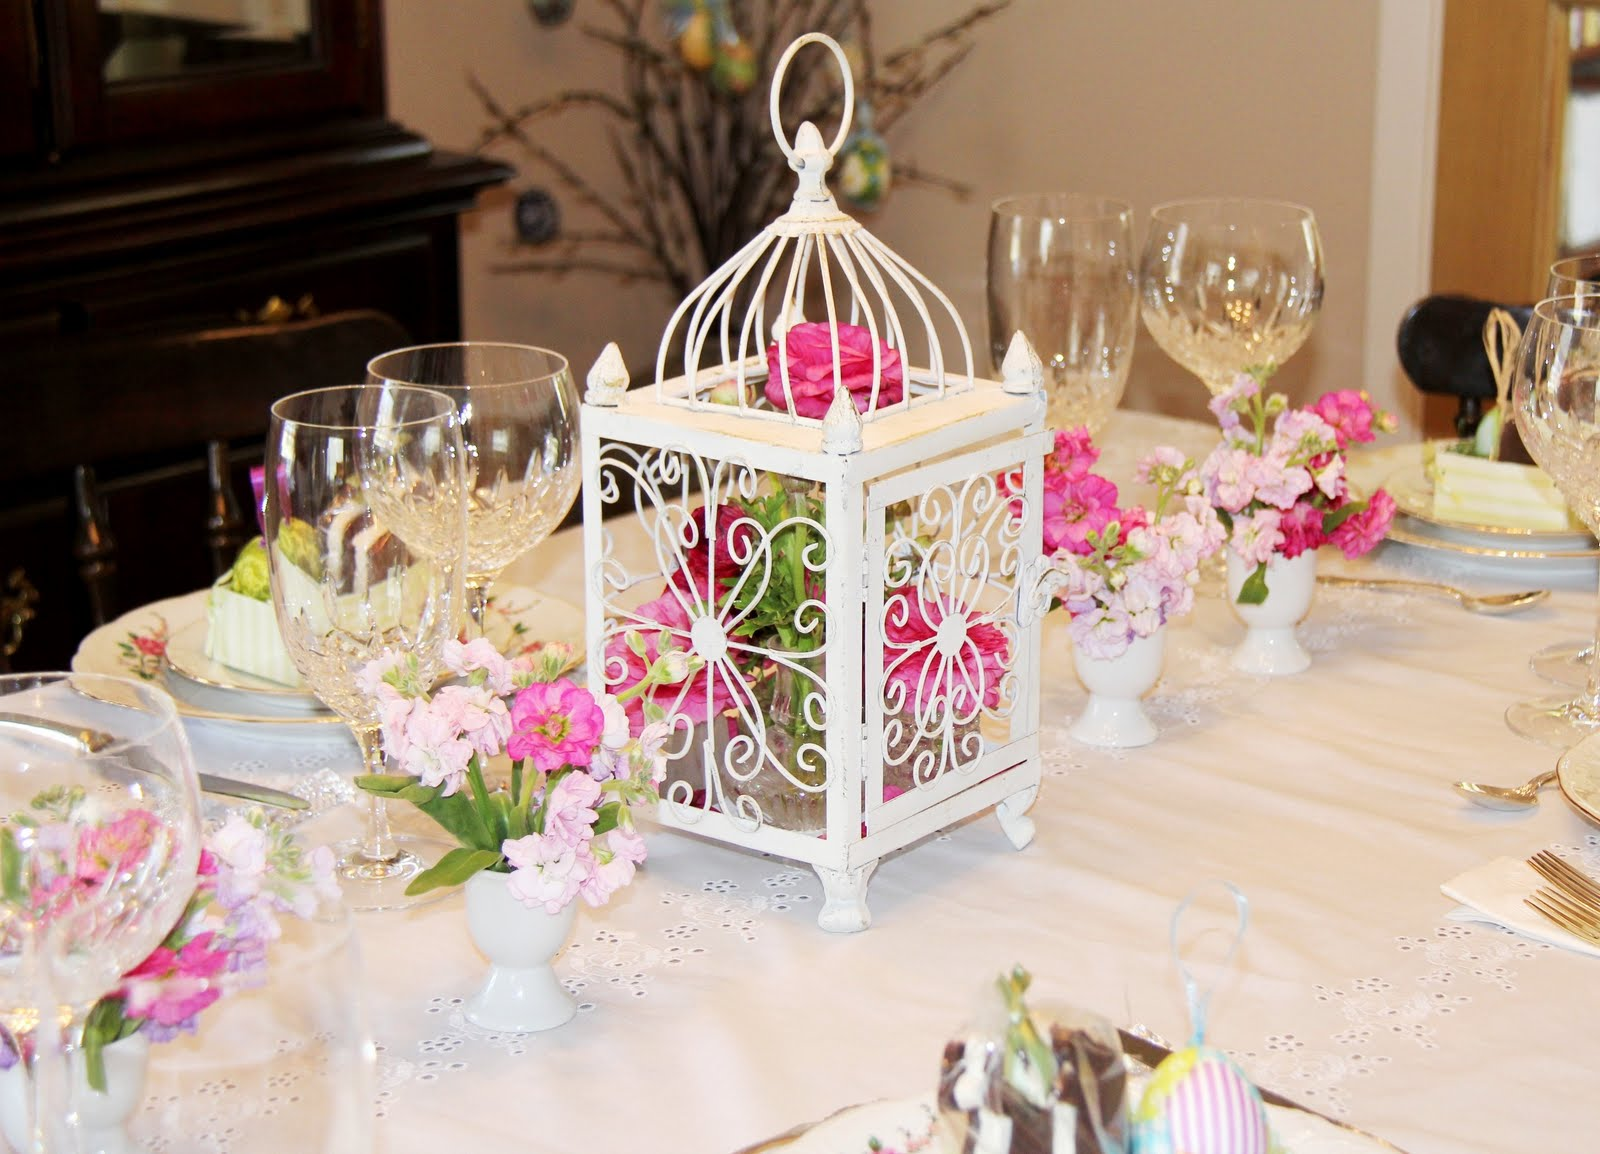 Stranded in cleveland easter table d cor birdcage and for Table centerpiece decor